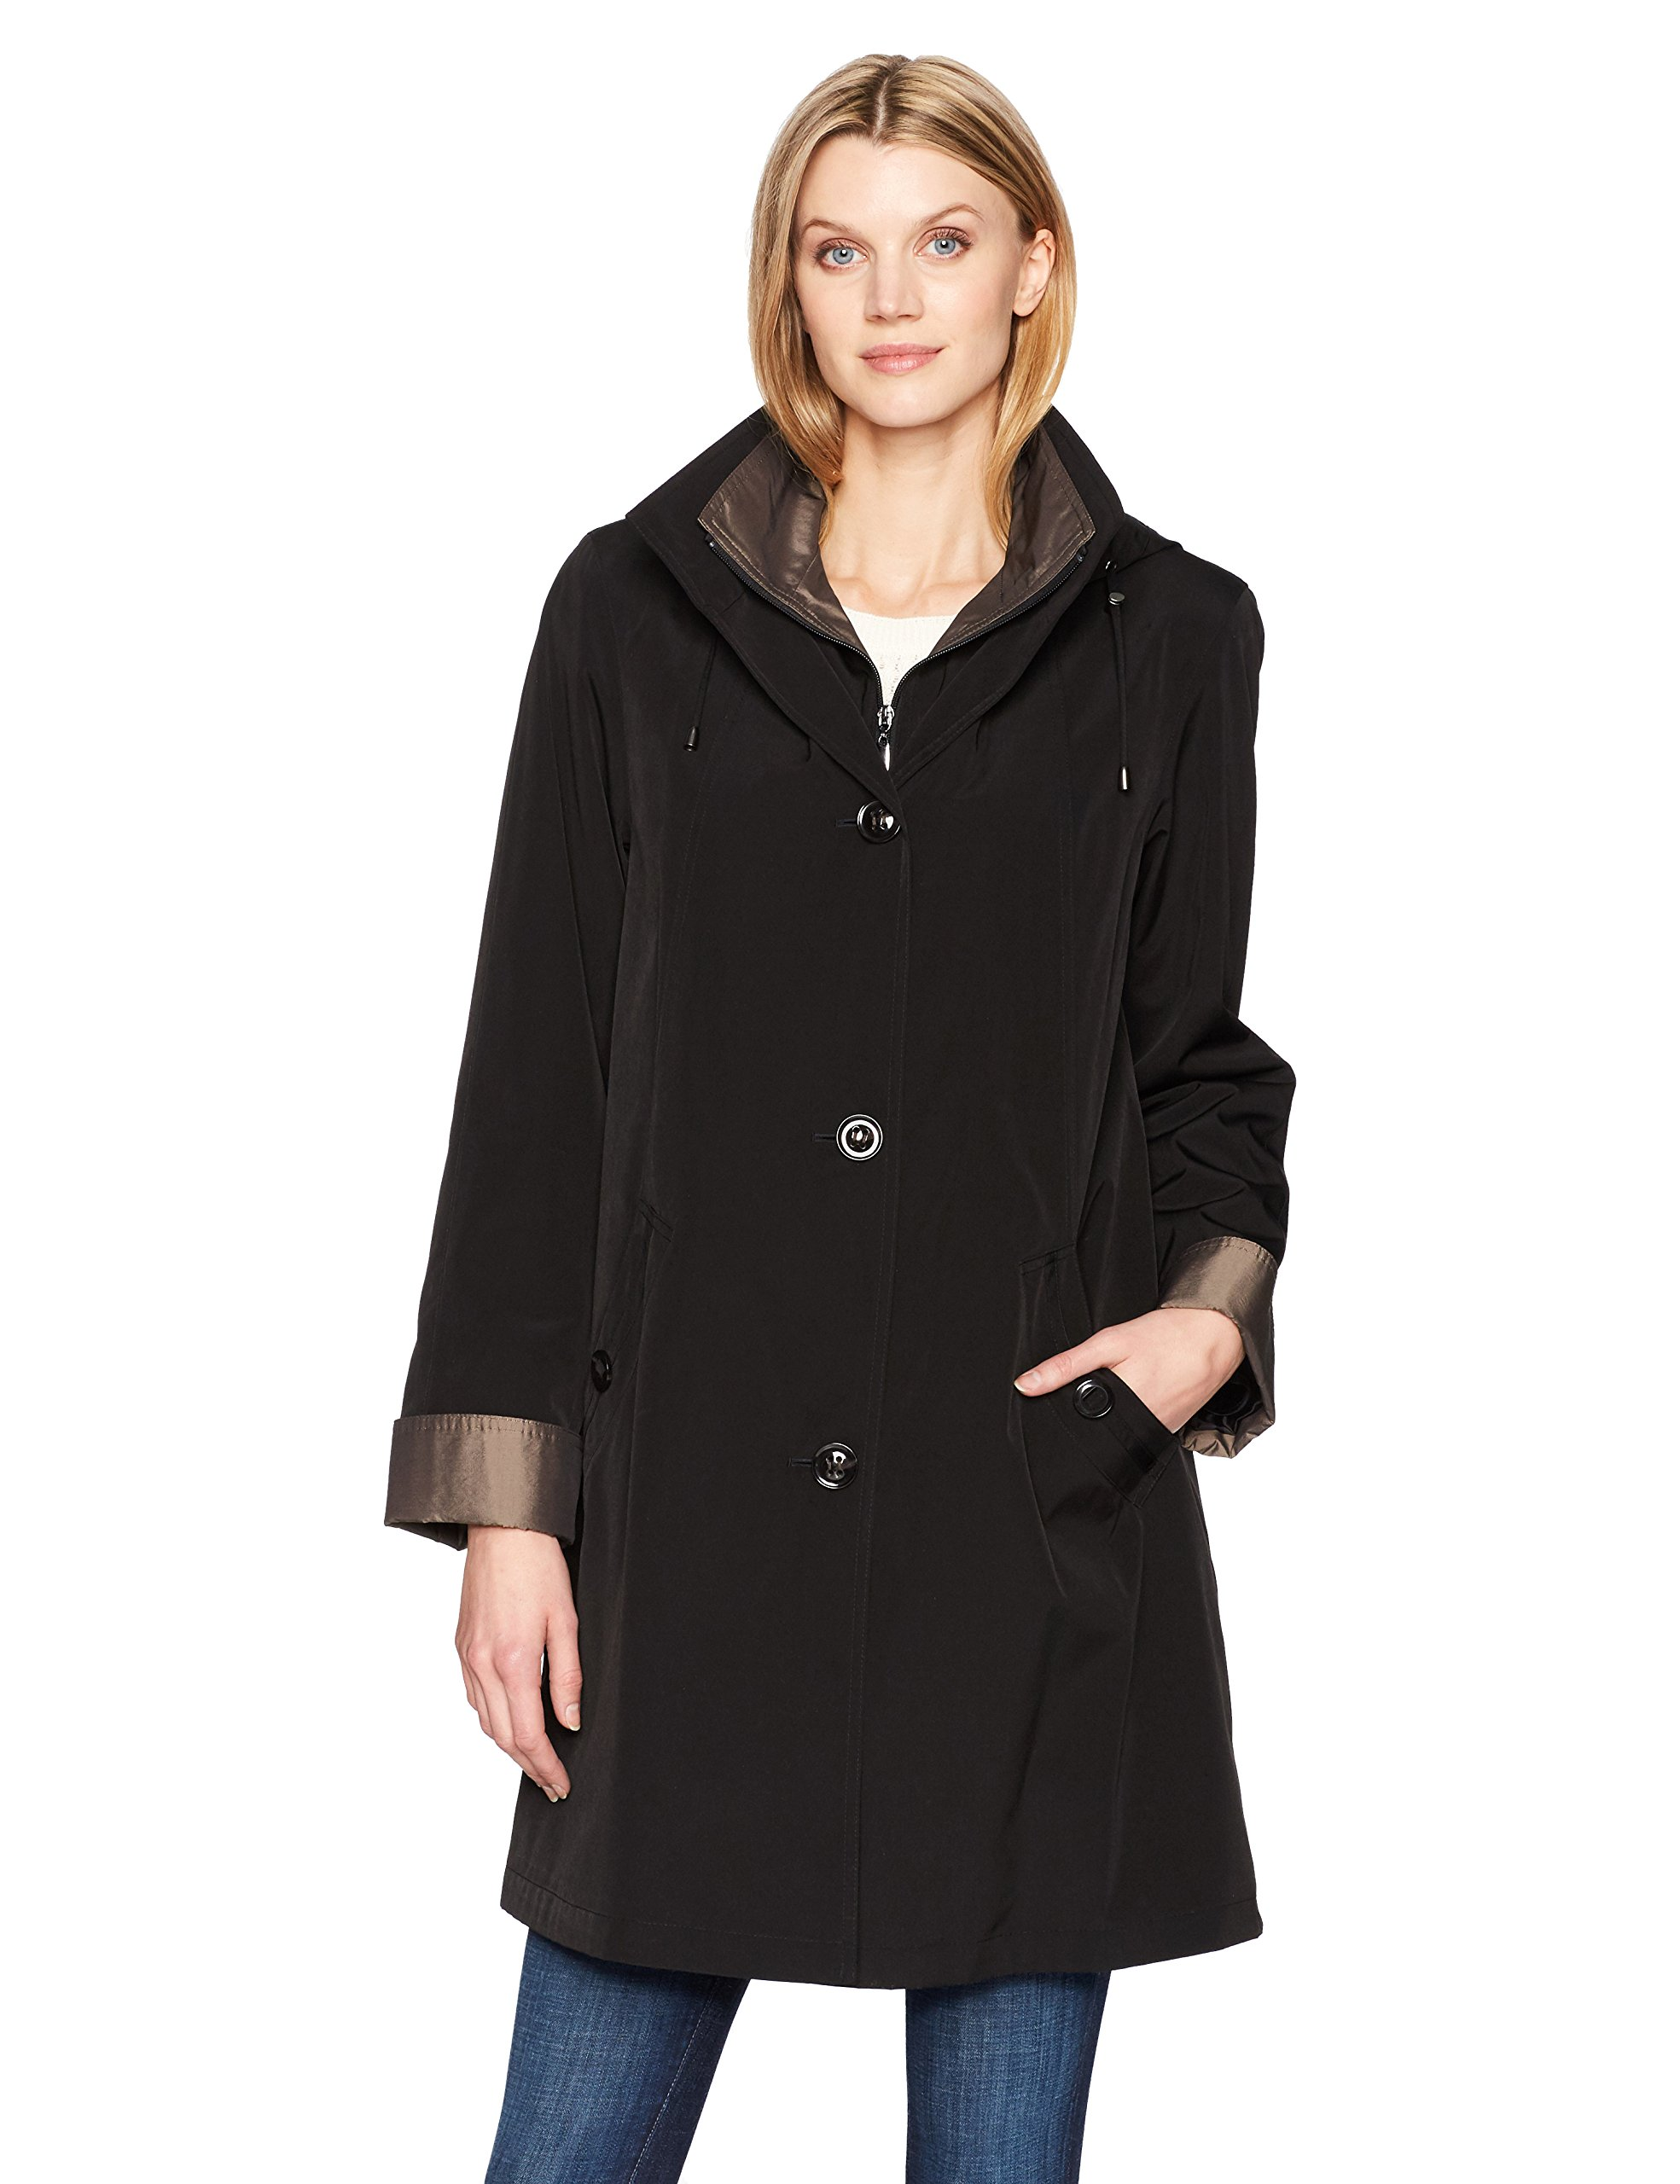 Gallery Women's 3/4 a Line Single Breasted Rain Coat, Black, Small by Gallery (Image #1)